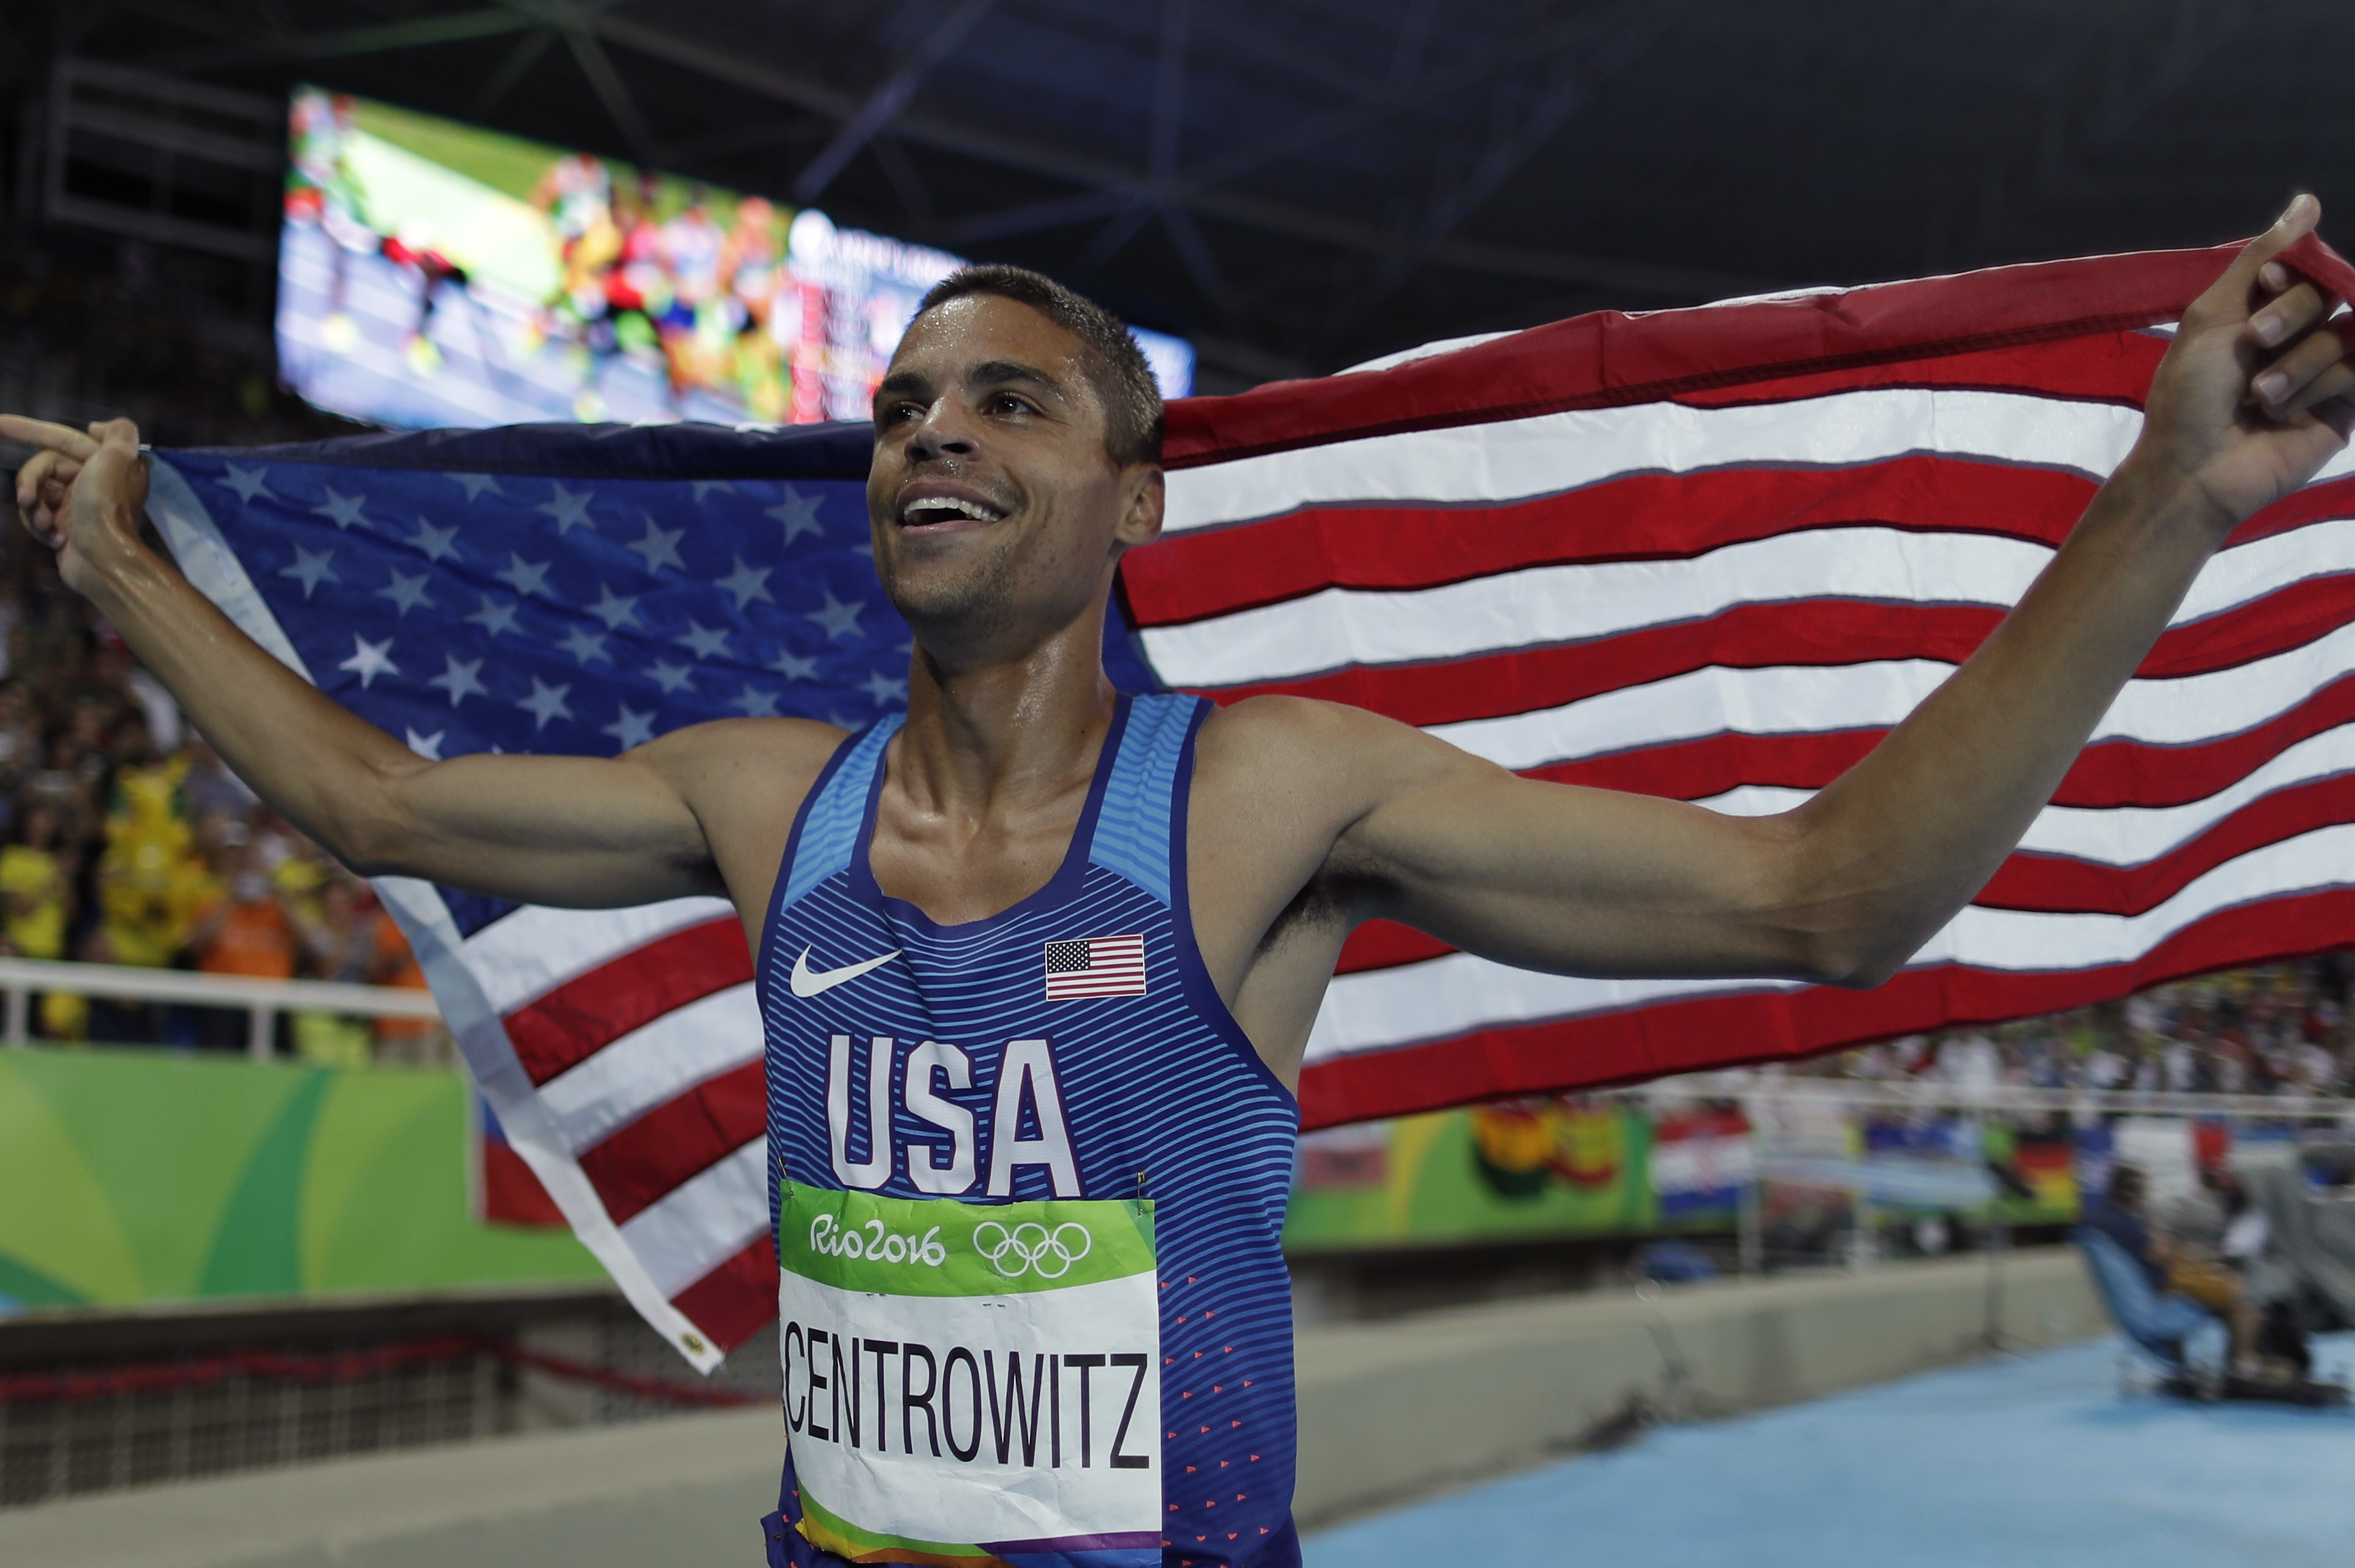 United States' Matthew Centrowitz celebrates after winning the gold medal in the men's 1500-meter final during the athletics competitions of the 2016 Summer Olympics at the Olympic stadium in Rio de Janeiro, Brazil, Saturday, Aug. 20, 2016. (AP Photo/Matt